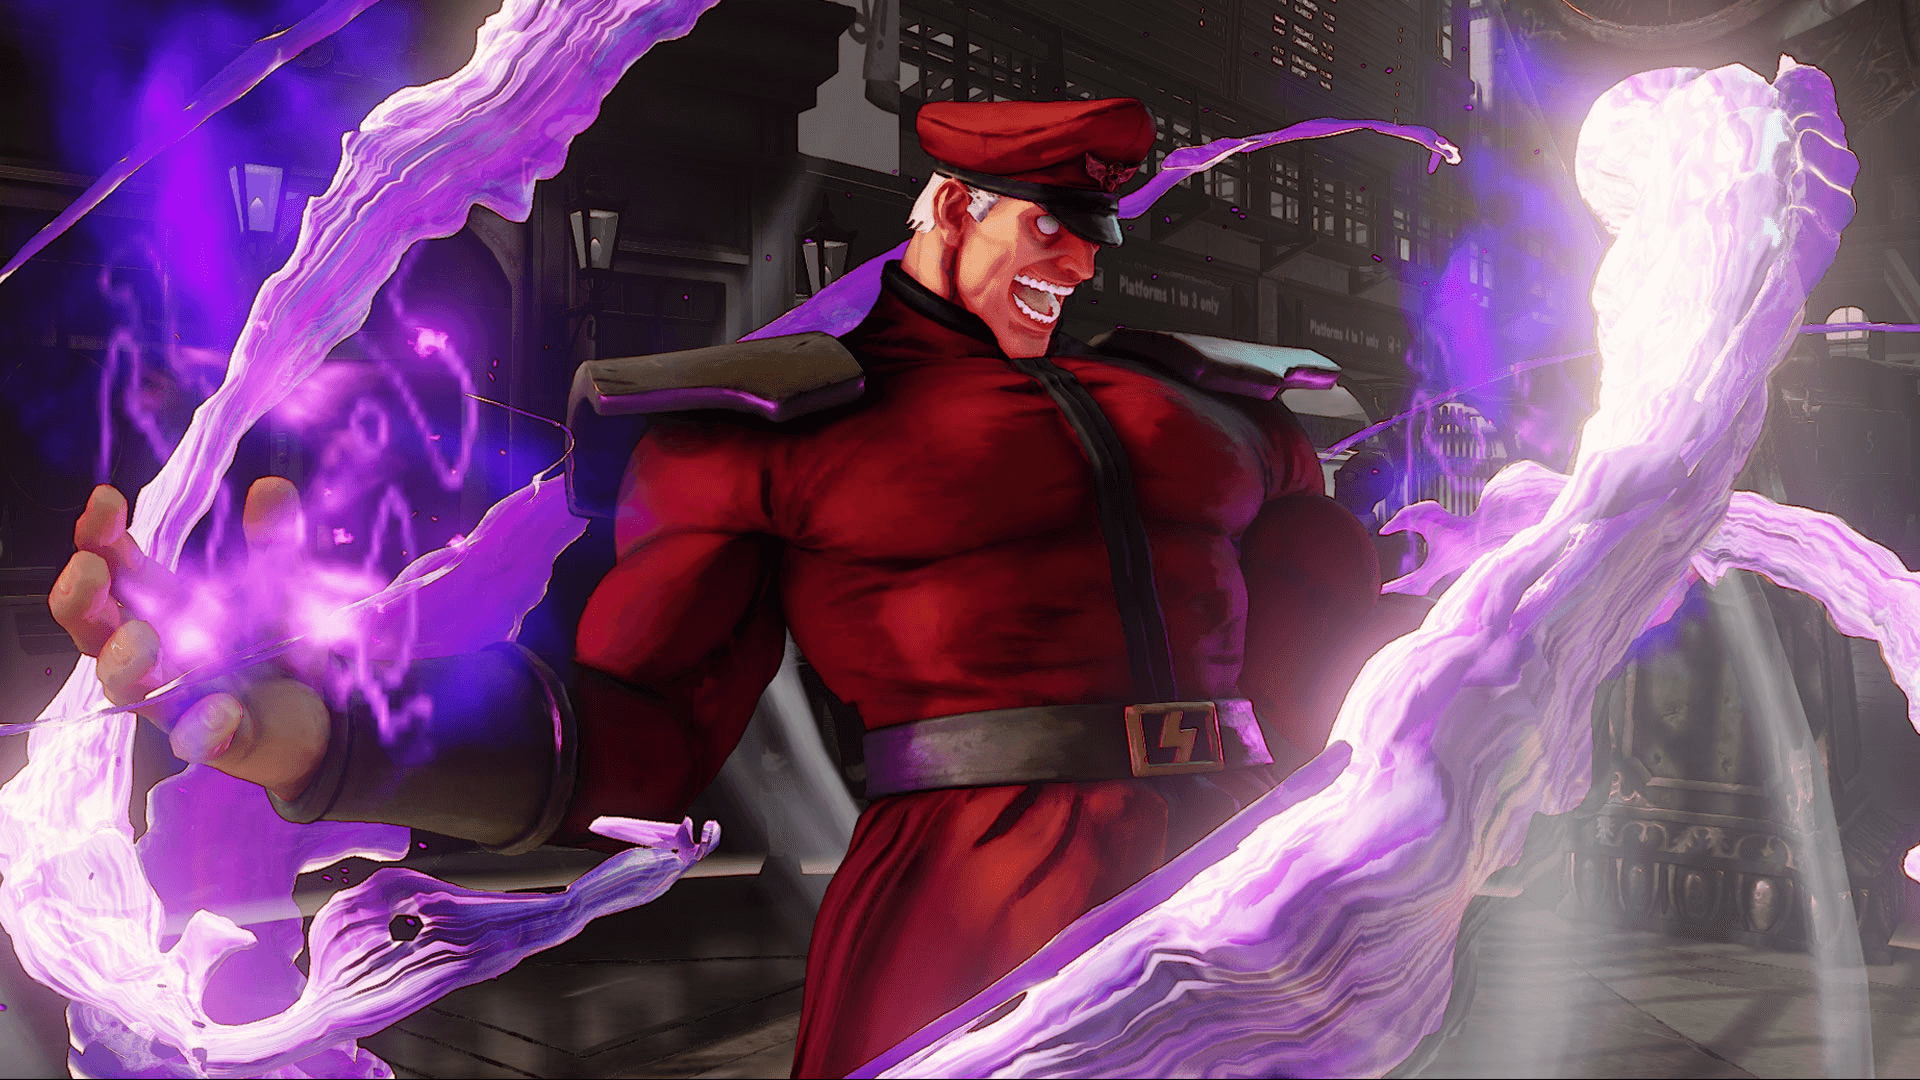 Street Fighter 5: M Bison Guide - Combos and Move List